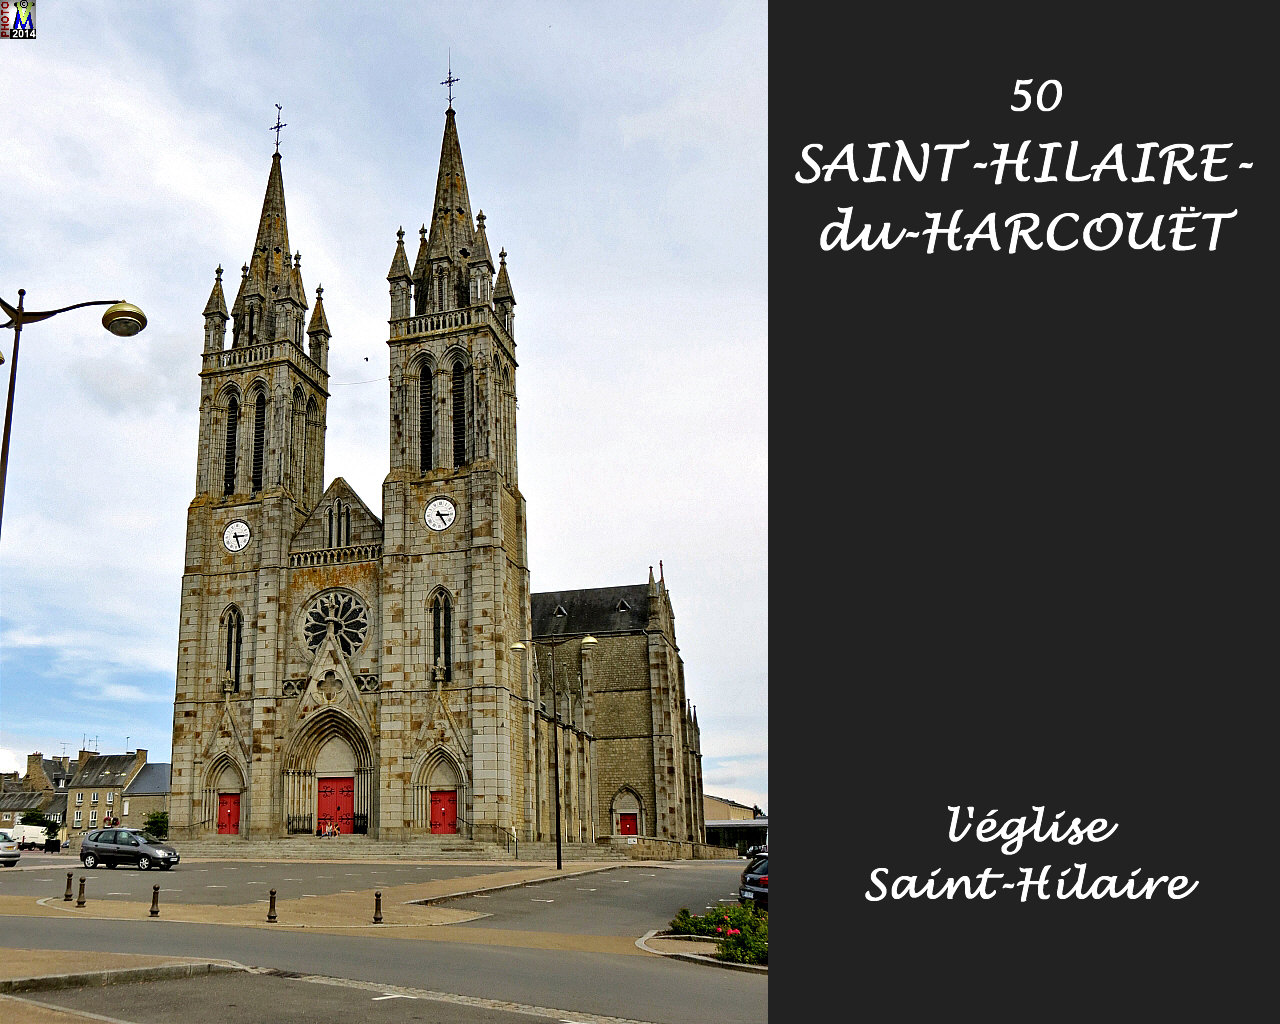 50StHILAIRE-HARCOUET_eglise_100.jpg